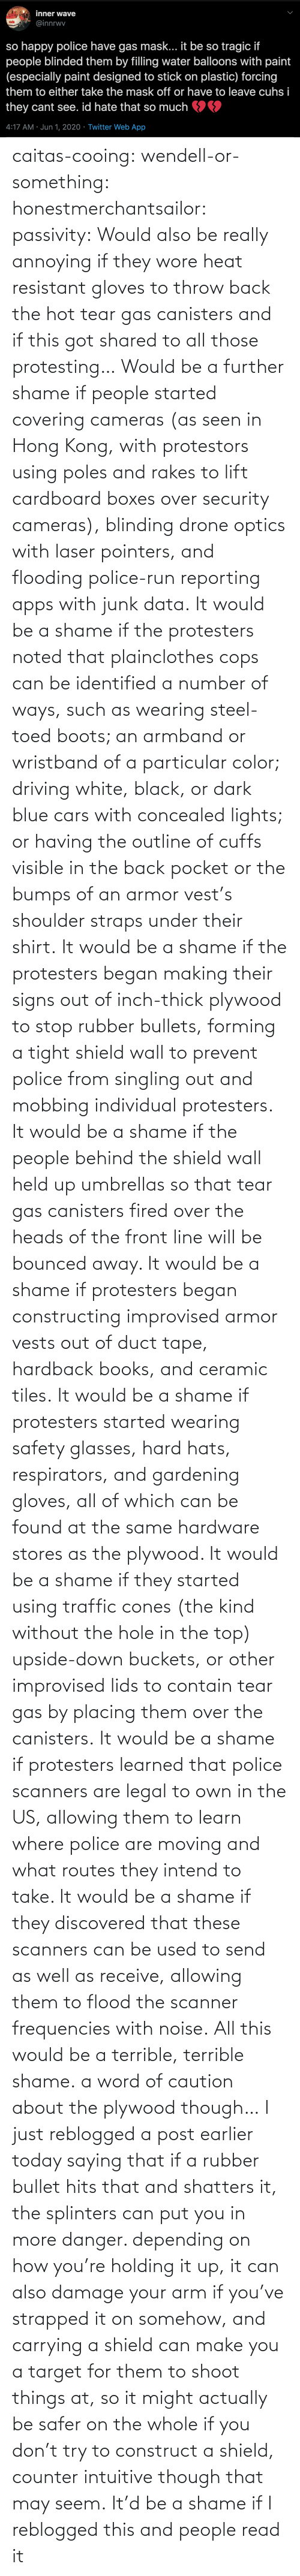 signs: caitas-cooing:  wendell-or-something: honestmerchantsailor:  passivity: Would also be really annoying if they wore heat resistant gloves to throw back the hot tear gas canisters and if this got shared to all those protesting… Would be a further shame if people started covering cameras (as seen in Hong Kong, with protestors using poles and rakes to lift cardboard boxes over security cameras), blinding drone optics with laser pointers, and flooding police-run reporting apps with junk data. It would be a shame if the protesters noted that plainclothes cops can be identified a number of ways, such as wearing steel-toed boots; an armband or wristband of a particular color; driving white, black, or dark blue cars with concealed lights; or having the outline of cuffs visible in the back pocket or the bumps of an armor vest's shoulder straps under their shirt. It would be a shame if the protesters began making their signs out of inch-thick plywood to stop rubber bullets, forming a tight shield wall to prevent police from singling out and mobbing individual protesters. It would be a shame if the people behind the shield wall held up umbrellas so that tear gas canisters fired over the heads of the front line will be bounced away. It would be a shame if protesters began constructing improvised armor vests out of duct tape, hardback books, and ceramic tiles. It would be a shame if protesters started wearing safety glasses, hard hats, respirators, and gardening gloves, all of which can be found at the same hardware stores as the plywood. It would be a shame if they started using traffic cones (the kind without the hole in the top) upside-down buckets, or other improvised lids to contain tear gas by placing them over the canisters. It would be a shame if protesters learned that police scanners are legal to own in the US, allowing them to learn where police are moving and what routes they intend to take. It would be a shame if they discovered that these scanners can be used to send as well as receive, allowing them to flood the scanner frequencies with noise. All this would be a terrible, terrible shame.    a word of caution about the plywood though… I just reblogged a post earlier today saying that if a rubber bullet hits that and shatters it, the splinters can put you in more danger. depending on how you're holding it up, it can also damage your arm if you've strapped it on somehow, and carrying a shield can make you a target for them to shoot things at, so it might actually be safer on the whole if you don't try to construct a shield, counter intuitive though that may seem.    It'd be a shame if I reblogged this and people read it